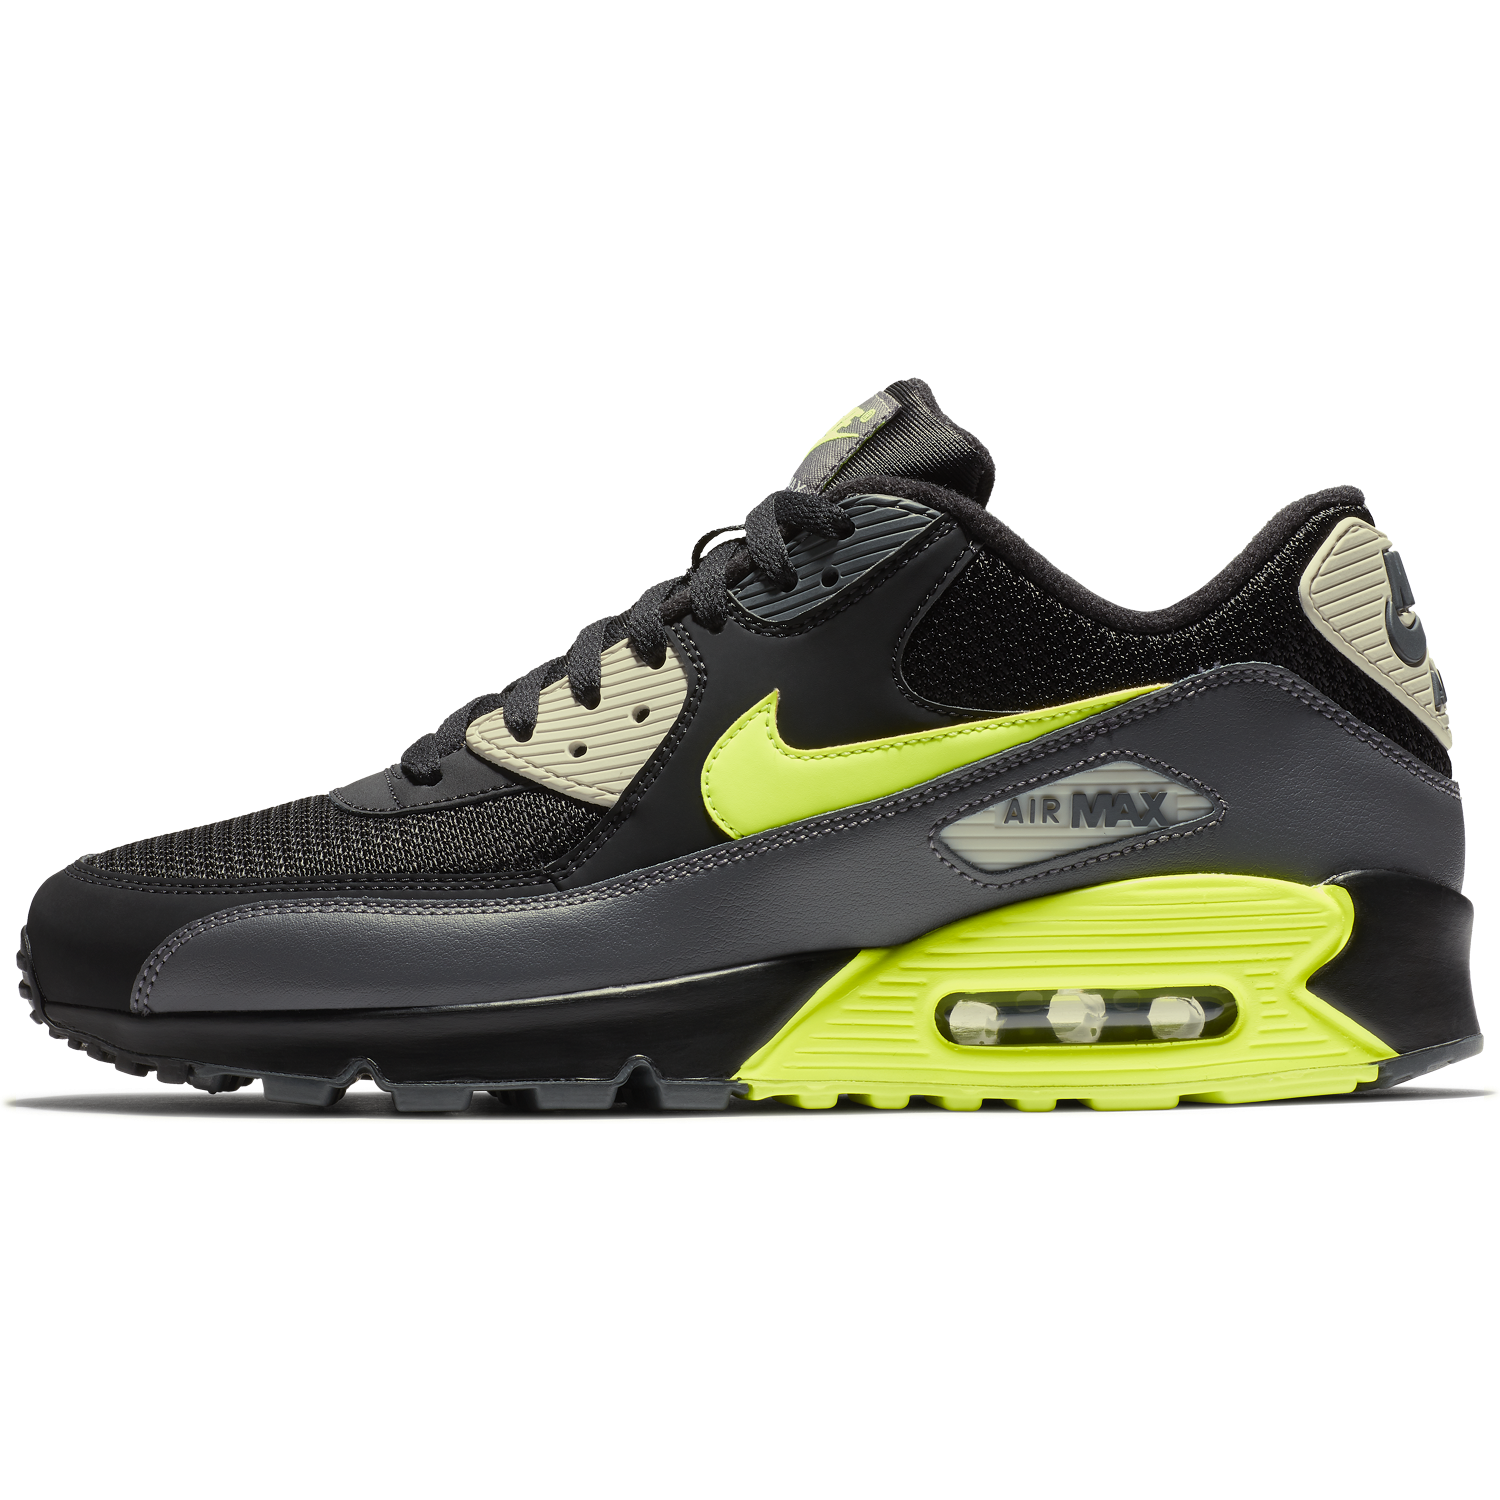 competitive price bc37e 0f47d ... BUTY MĘSKIE LIFESTYLE NIKE AIR MAX 90 ESSENTIAL CZARNE AJ1285-015 ...